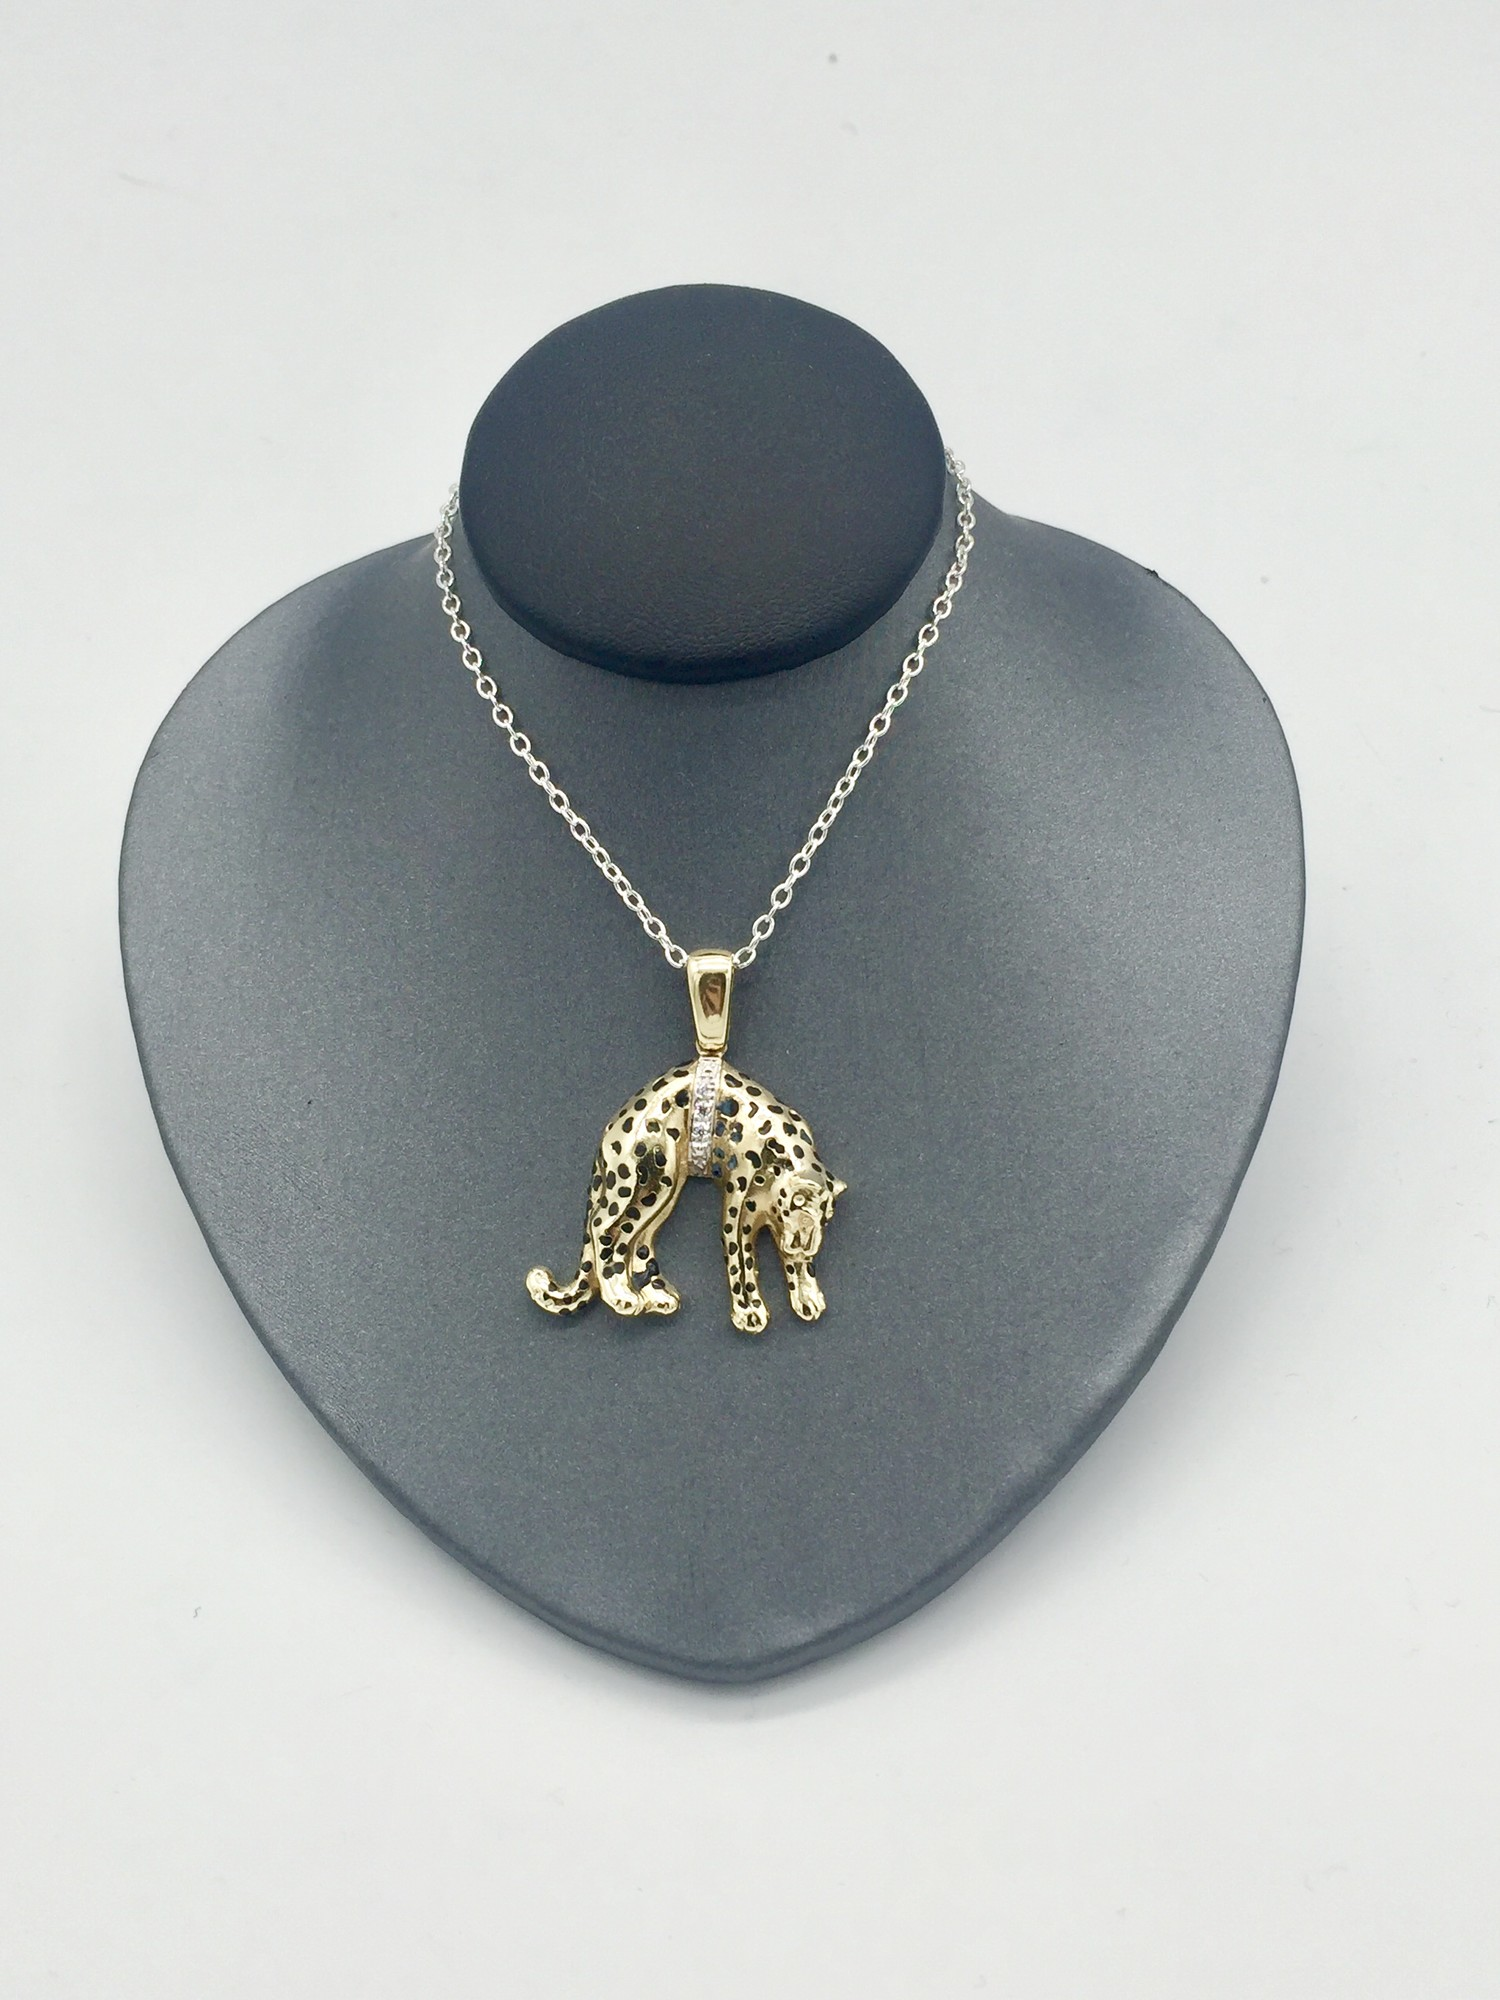 14KT YELLOW GOLD<br /> WEIGHT 3.9 DWT<br /> CHAIN NOT INCLUDED<br /> <br /> <br /> <br /> <br /> 14KT CAT PEND NO CHAIN, YELLOW, Size: LAH